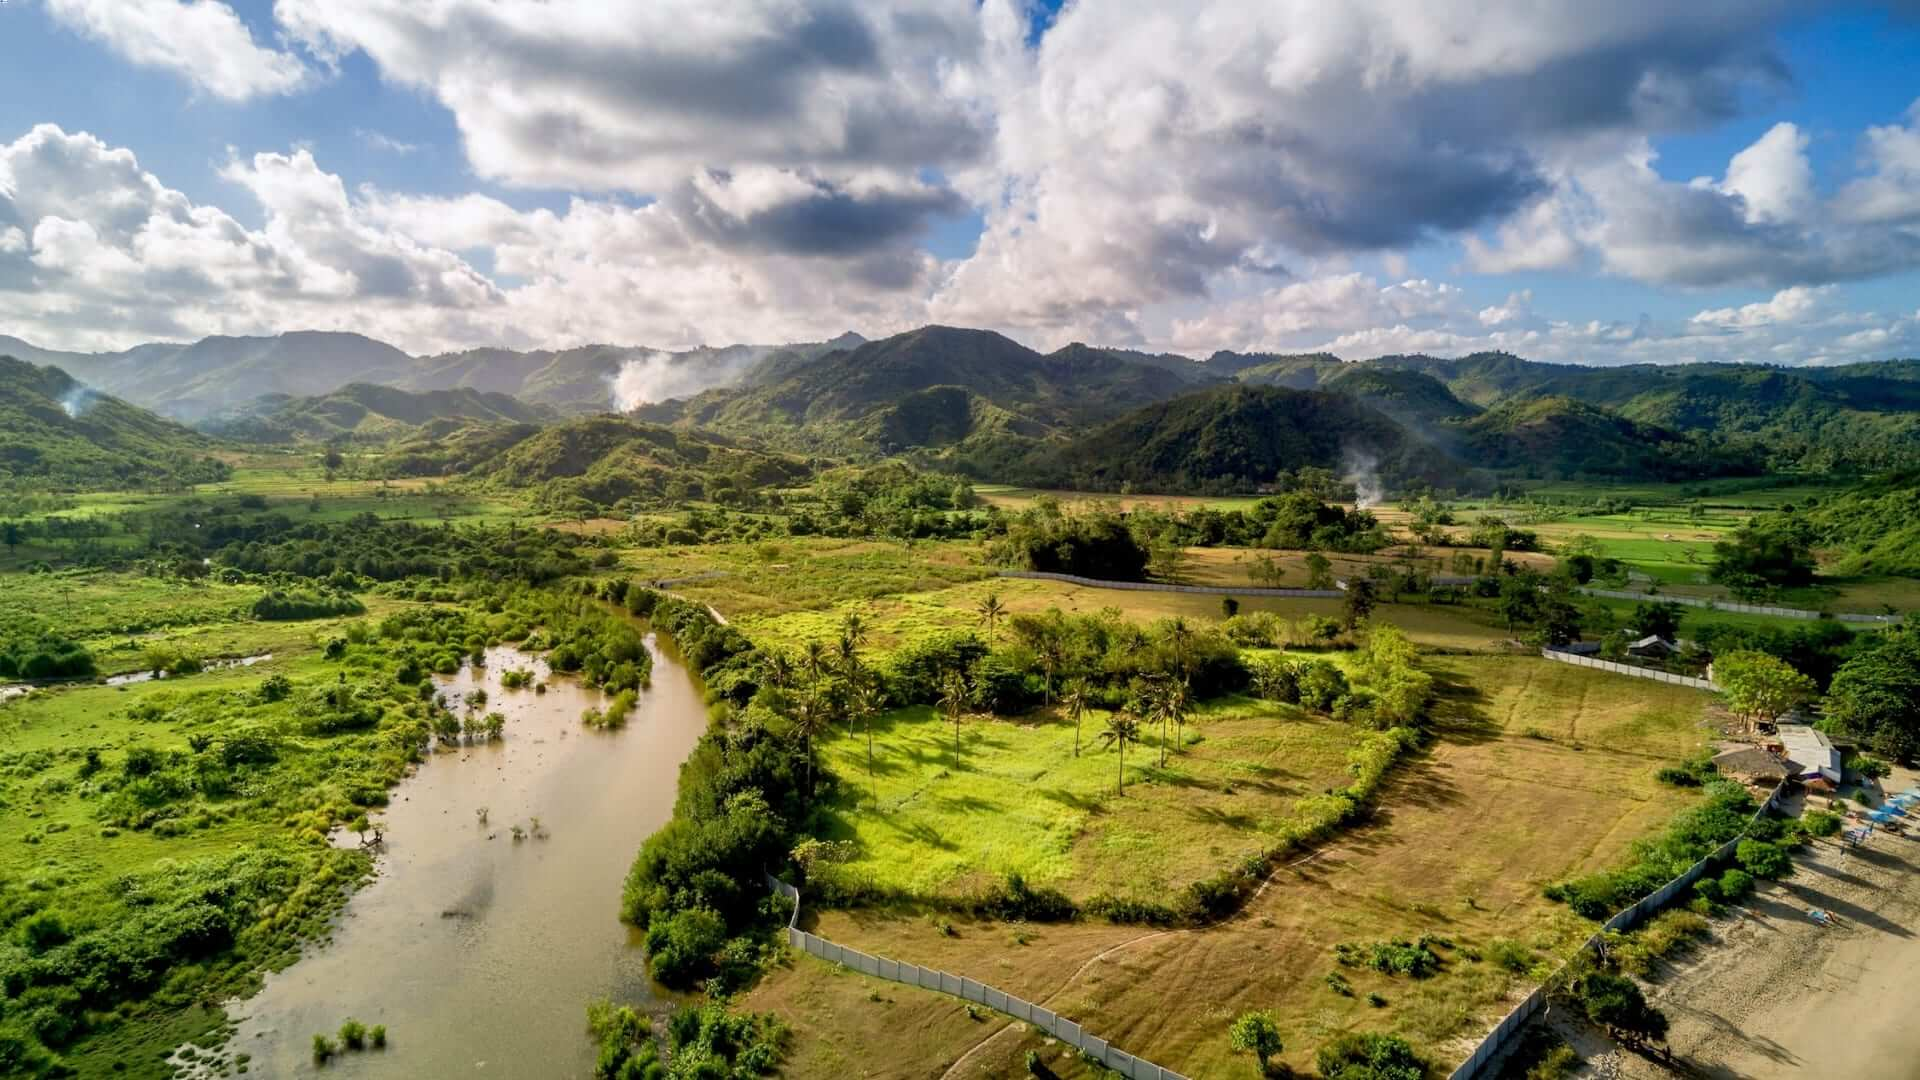 A river, green grasslands and hills during a claudy day in Lombok.